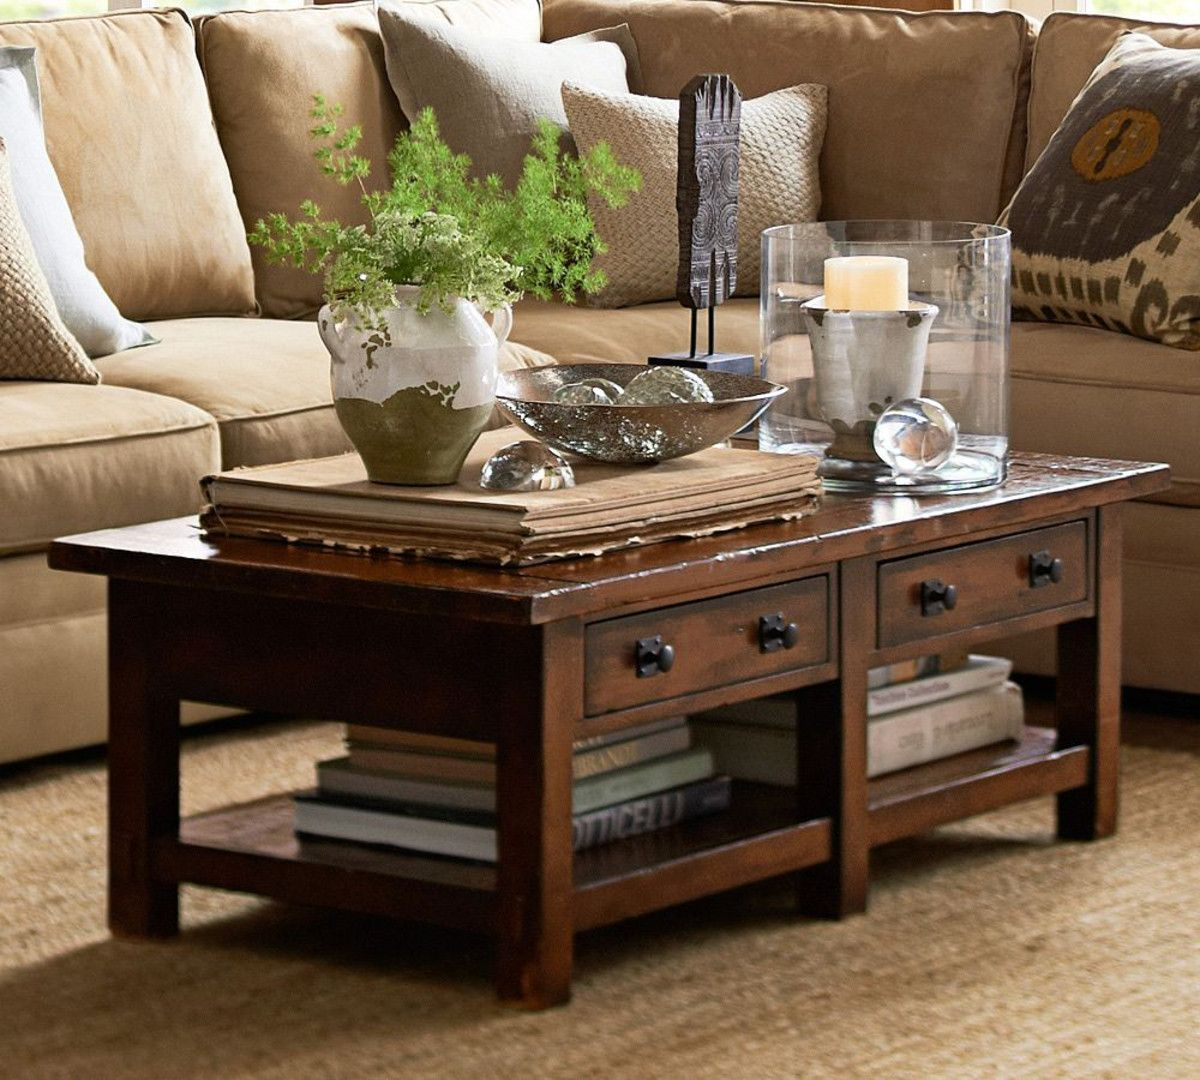 Benchwright Coffee Table   Rustic Mahogany Stain | Pottery Barn AU Part 63